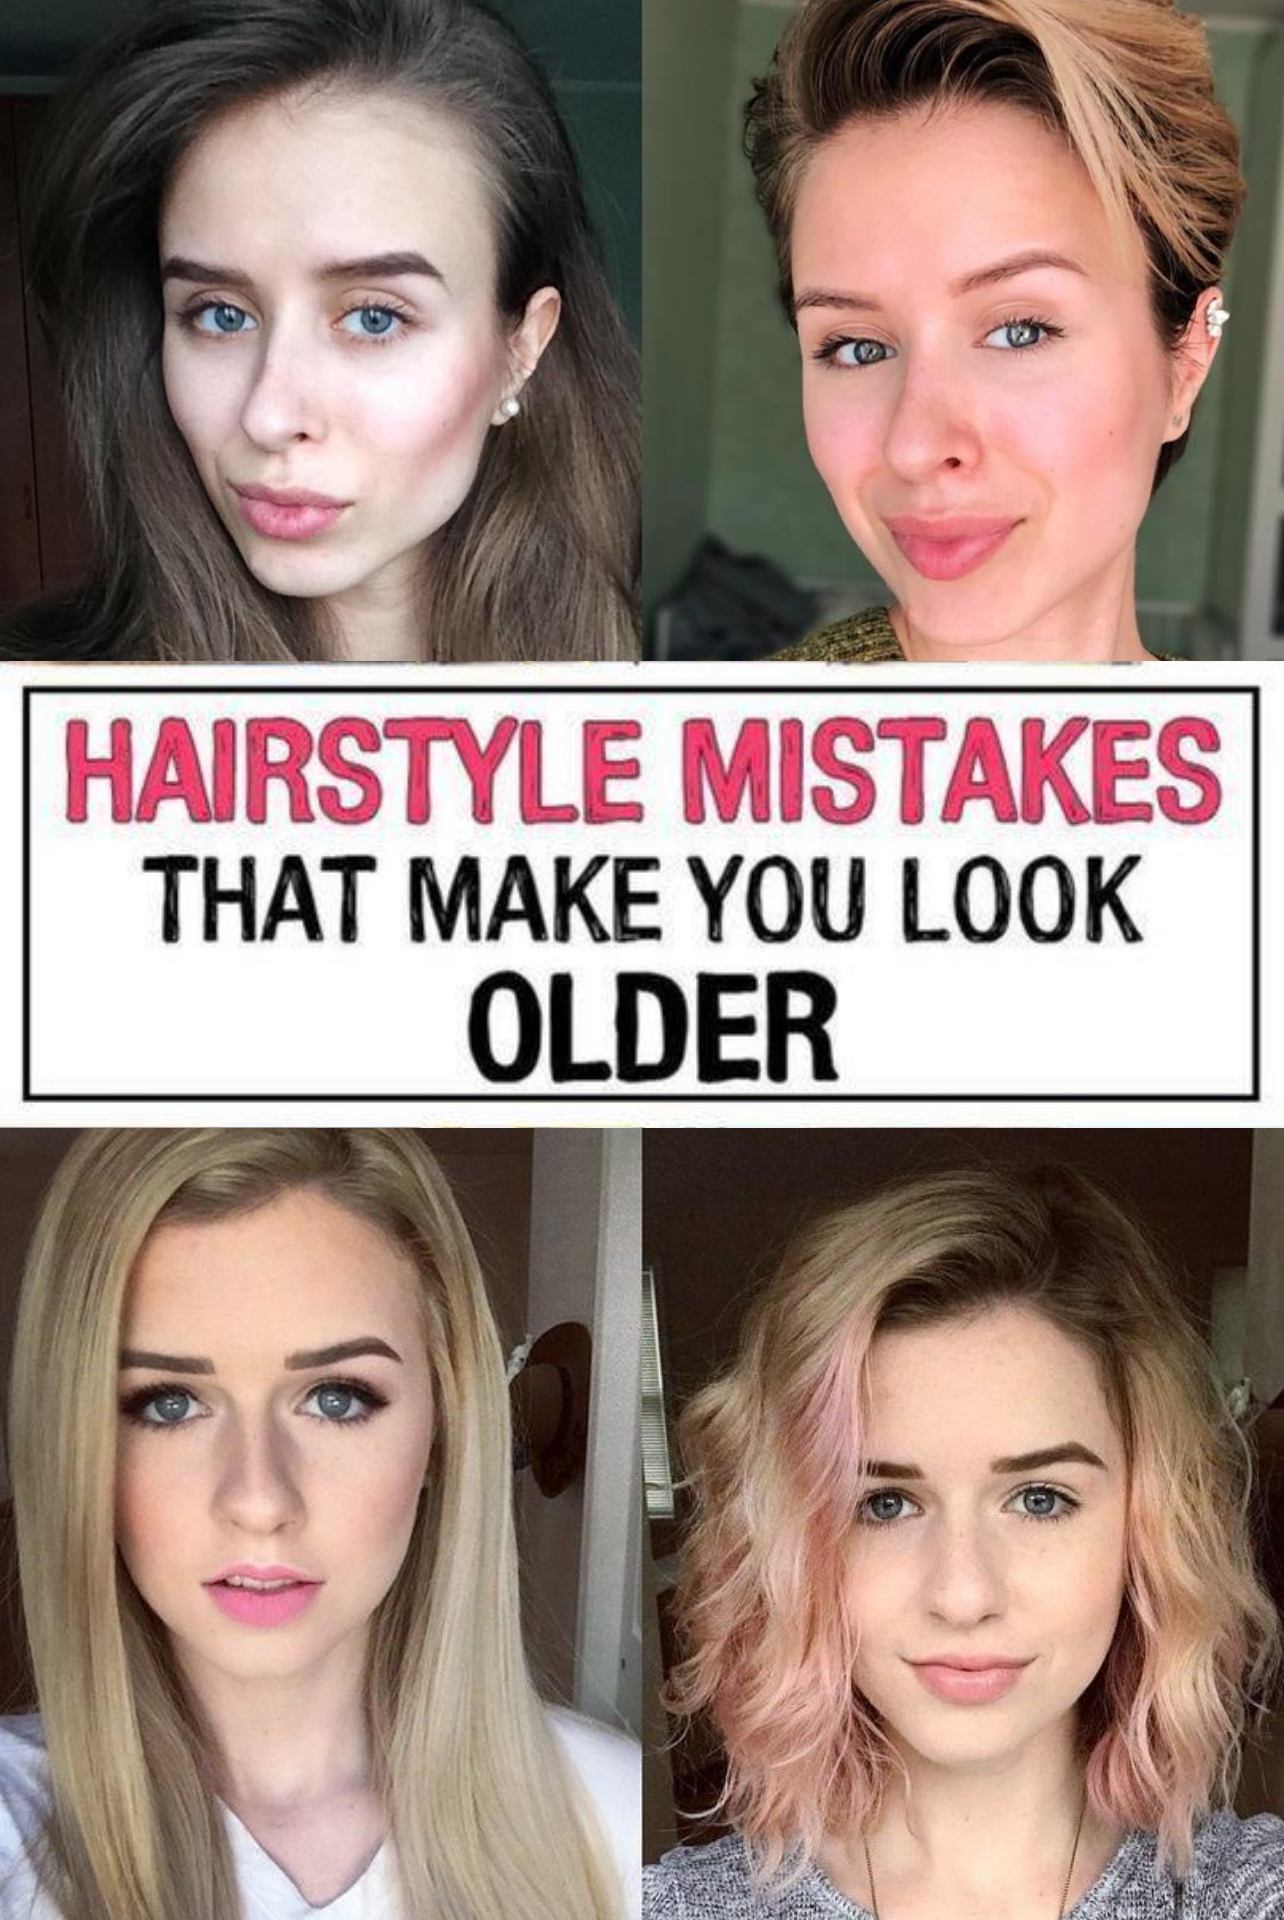 17 Hairstyle Mistakes That Are Aging You In 2020 Hairstyle Hair Mistakes Hair Advice